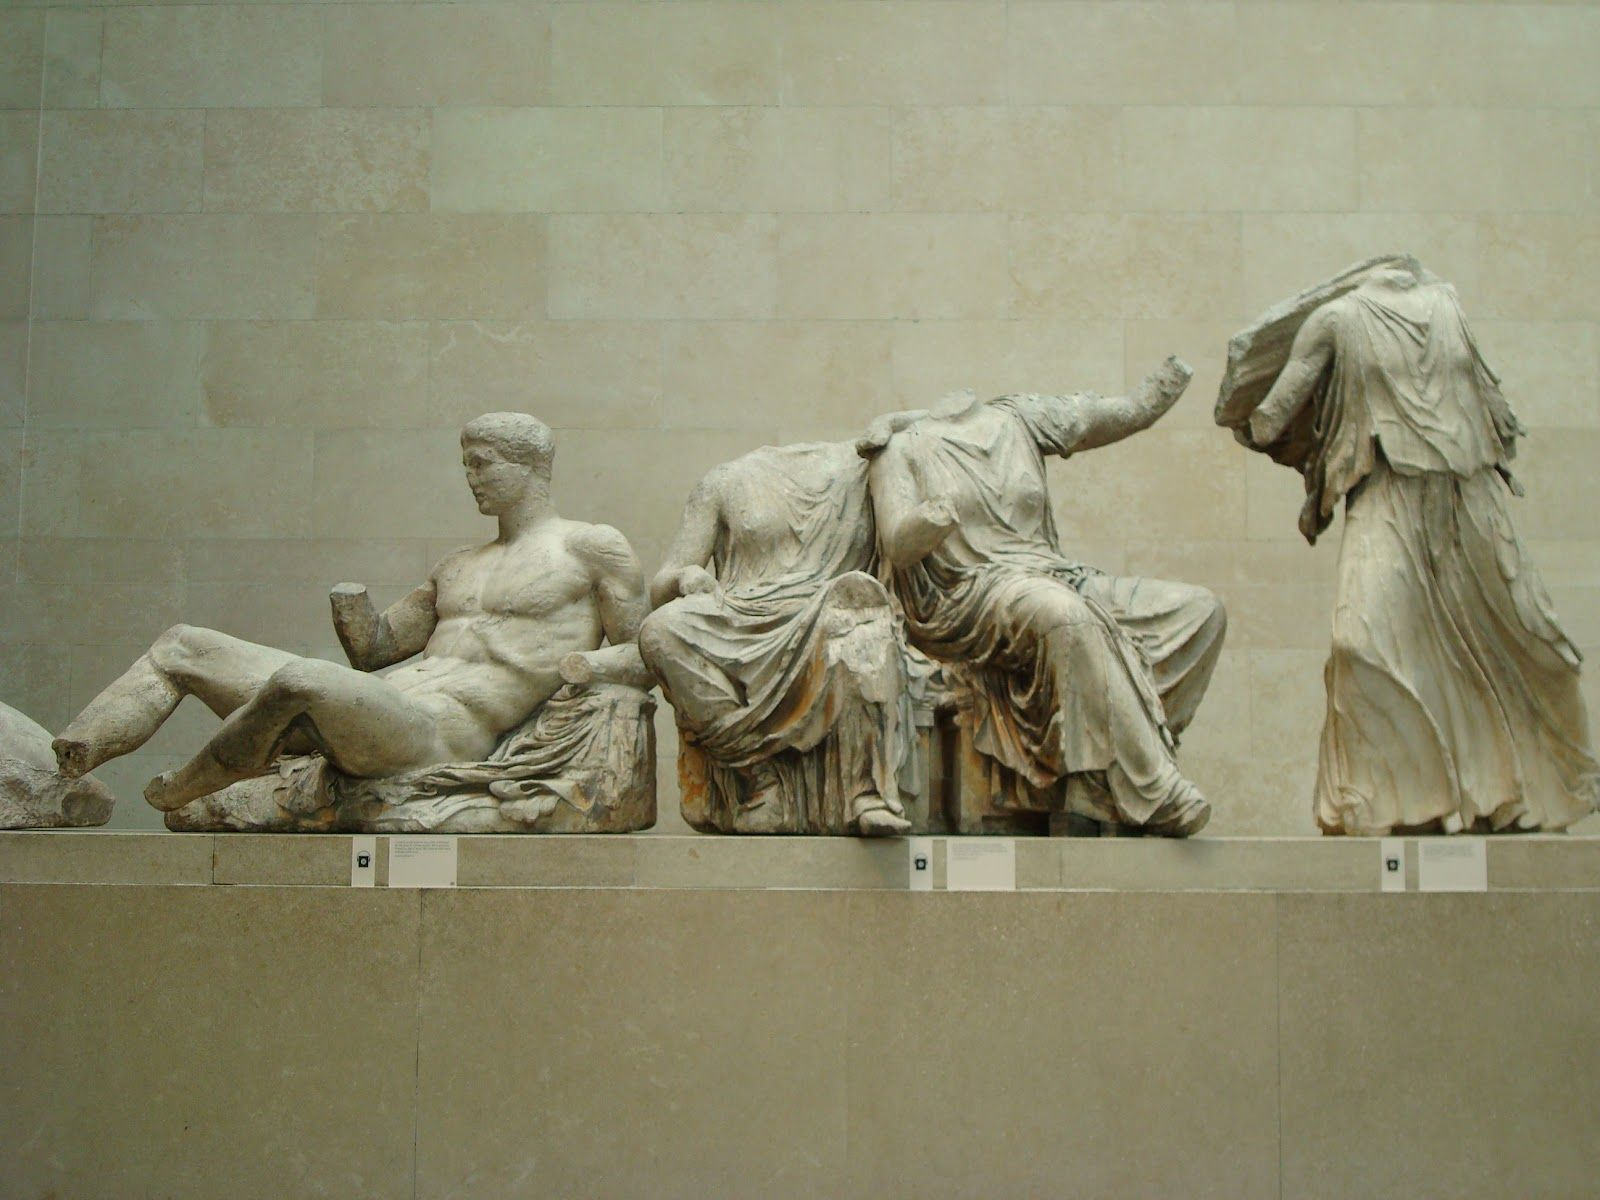 The Parthenon Marbles So Called Elgin Marbles At The British Museum London British Museum Greek Art Elgin Marbles